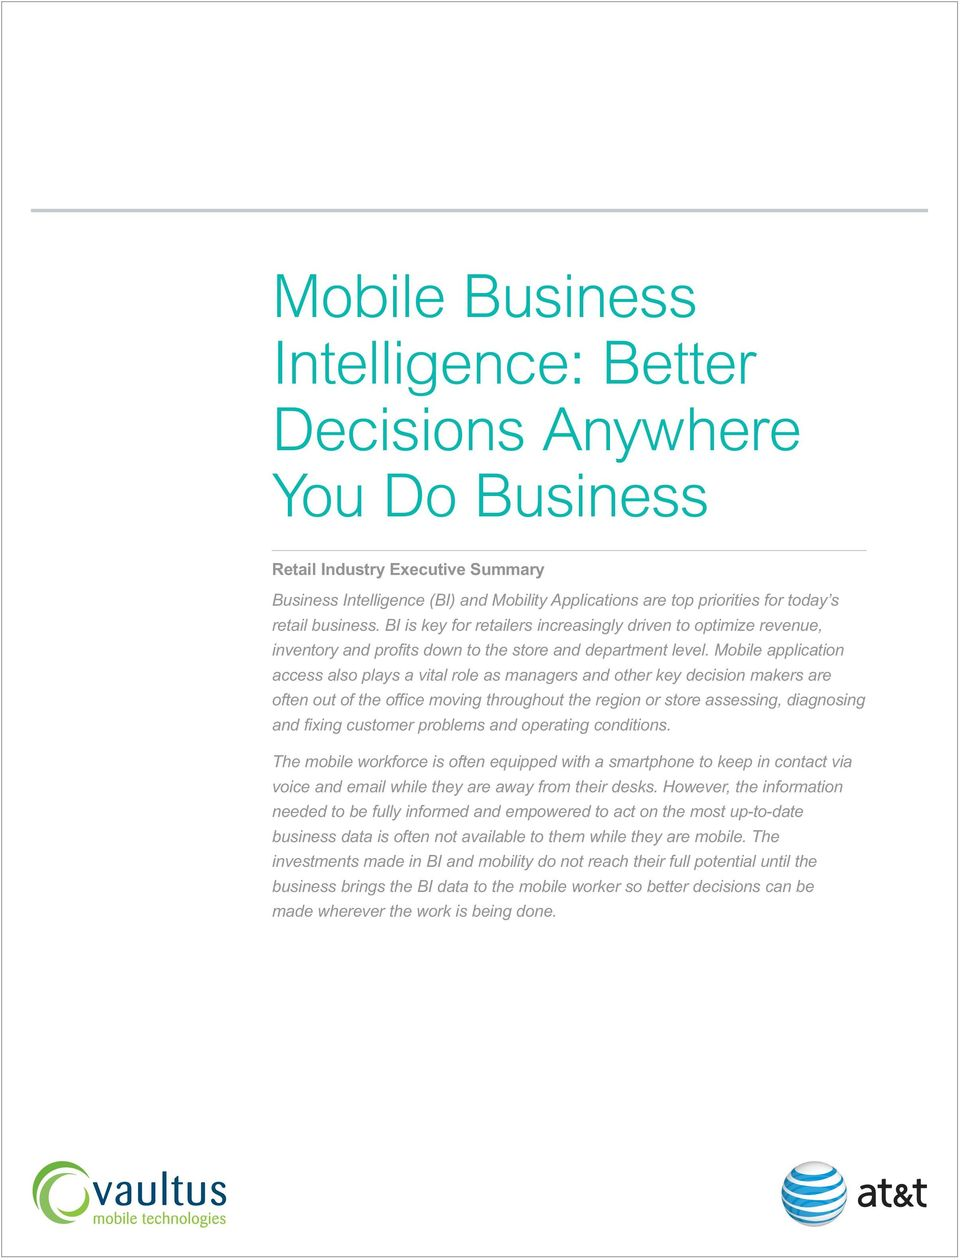 Mobile application access also plays a vital role as managers and other key decision makers are often out of the office moving throughout the region or store assessing, diagnosing and fixing customer